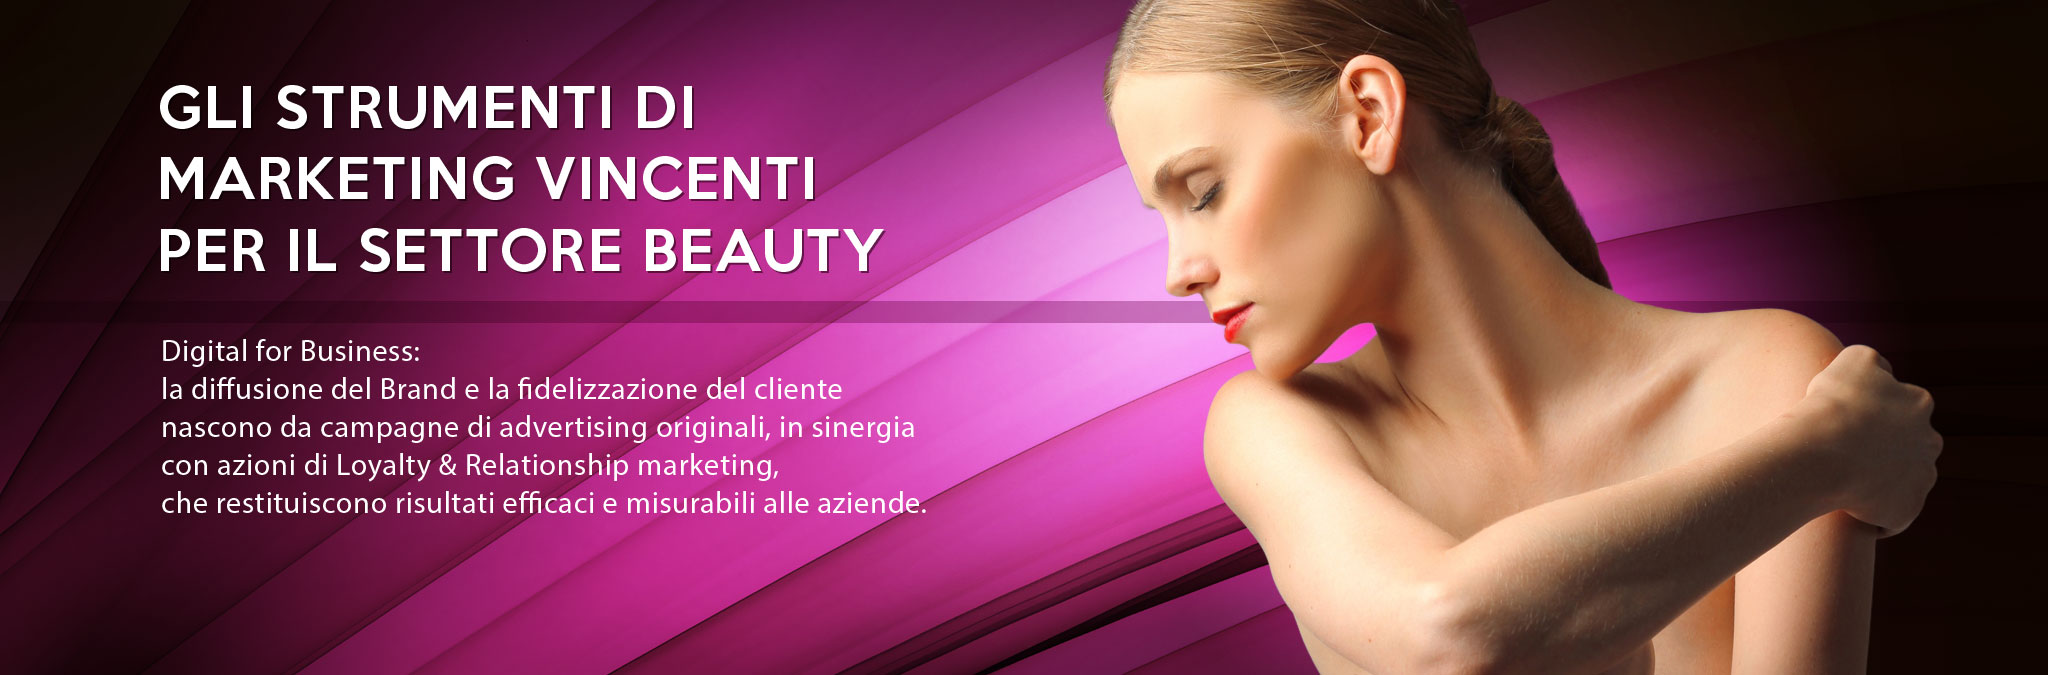 Digital for Business Beauty